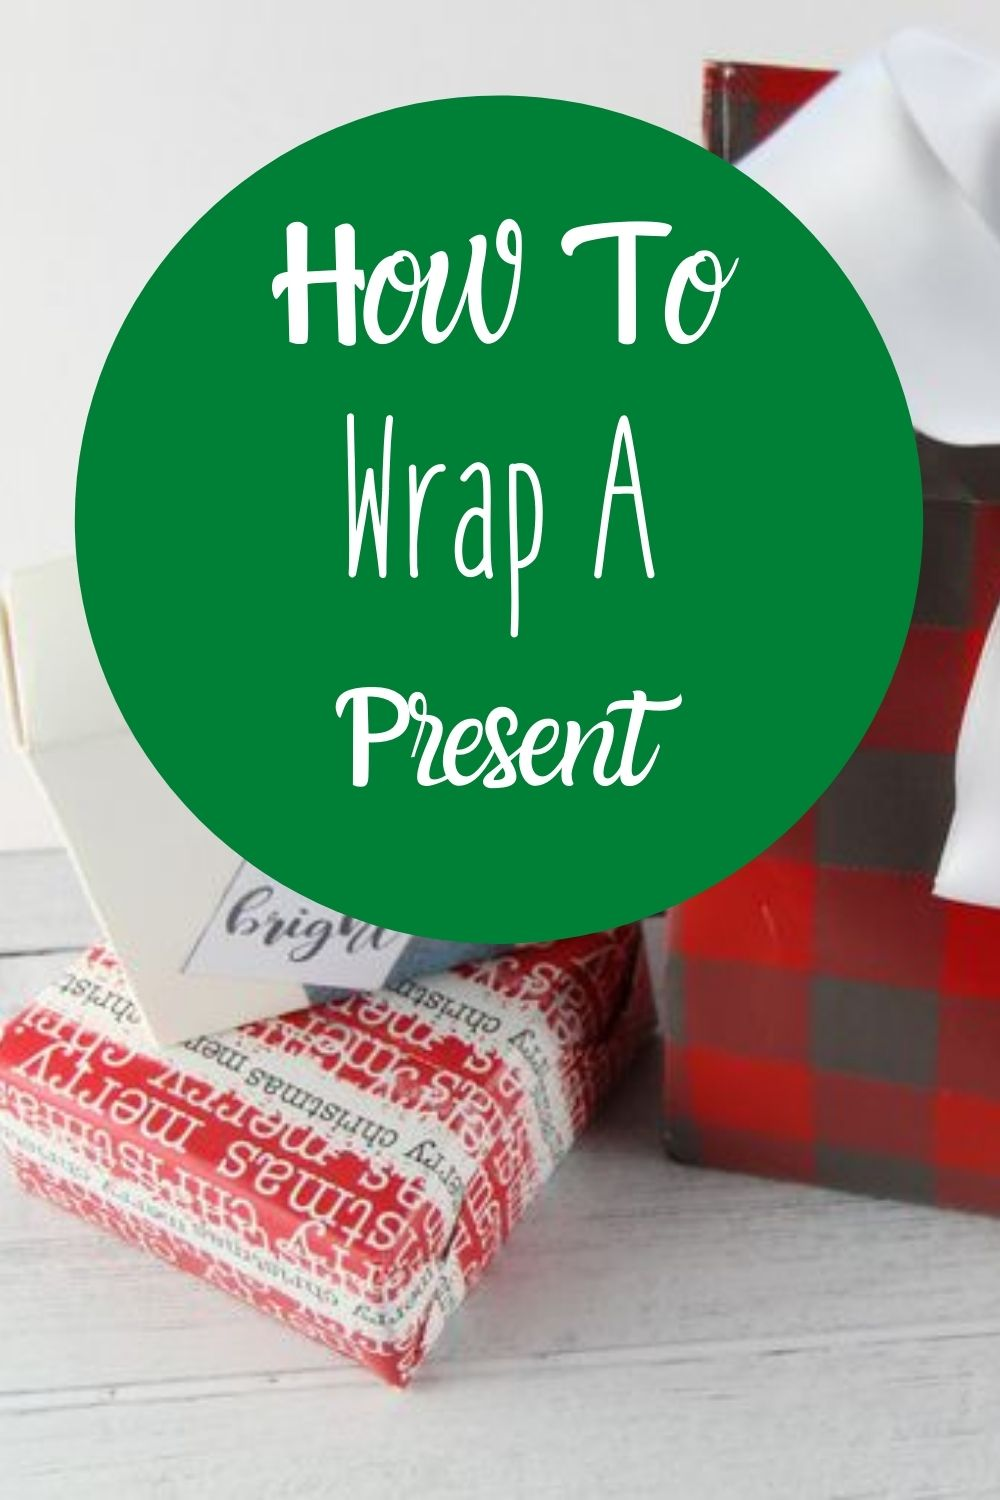 I'll show you how to wrap a present allowing you to master the skills of wrapping. Have fun wrapping gifts correctly and quickly. #wrappinggifts #howtowrappresents #wrapping via @homebyjenn